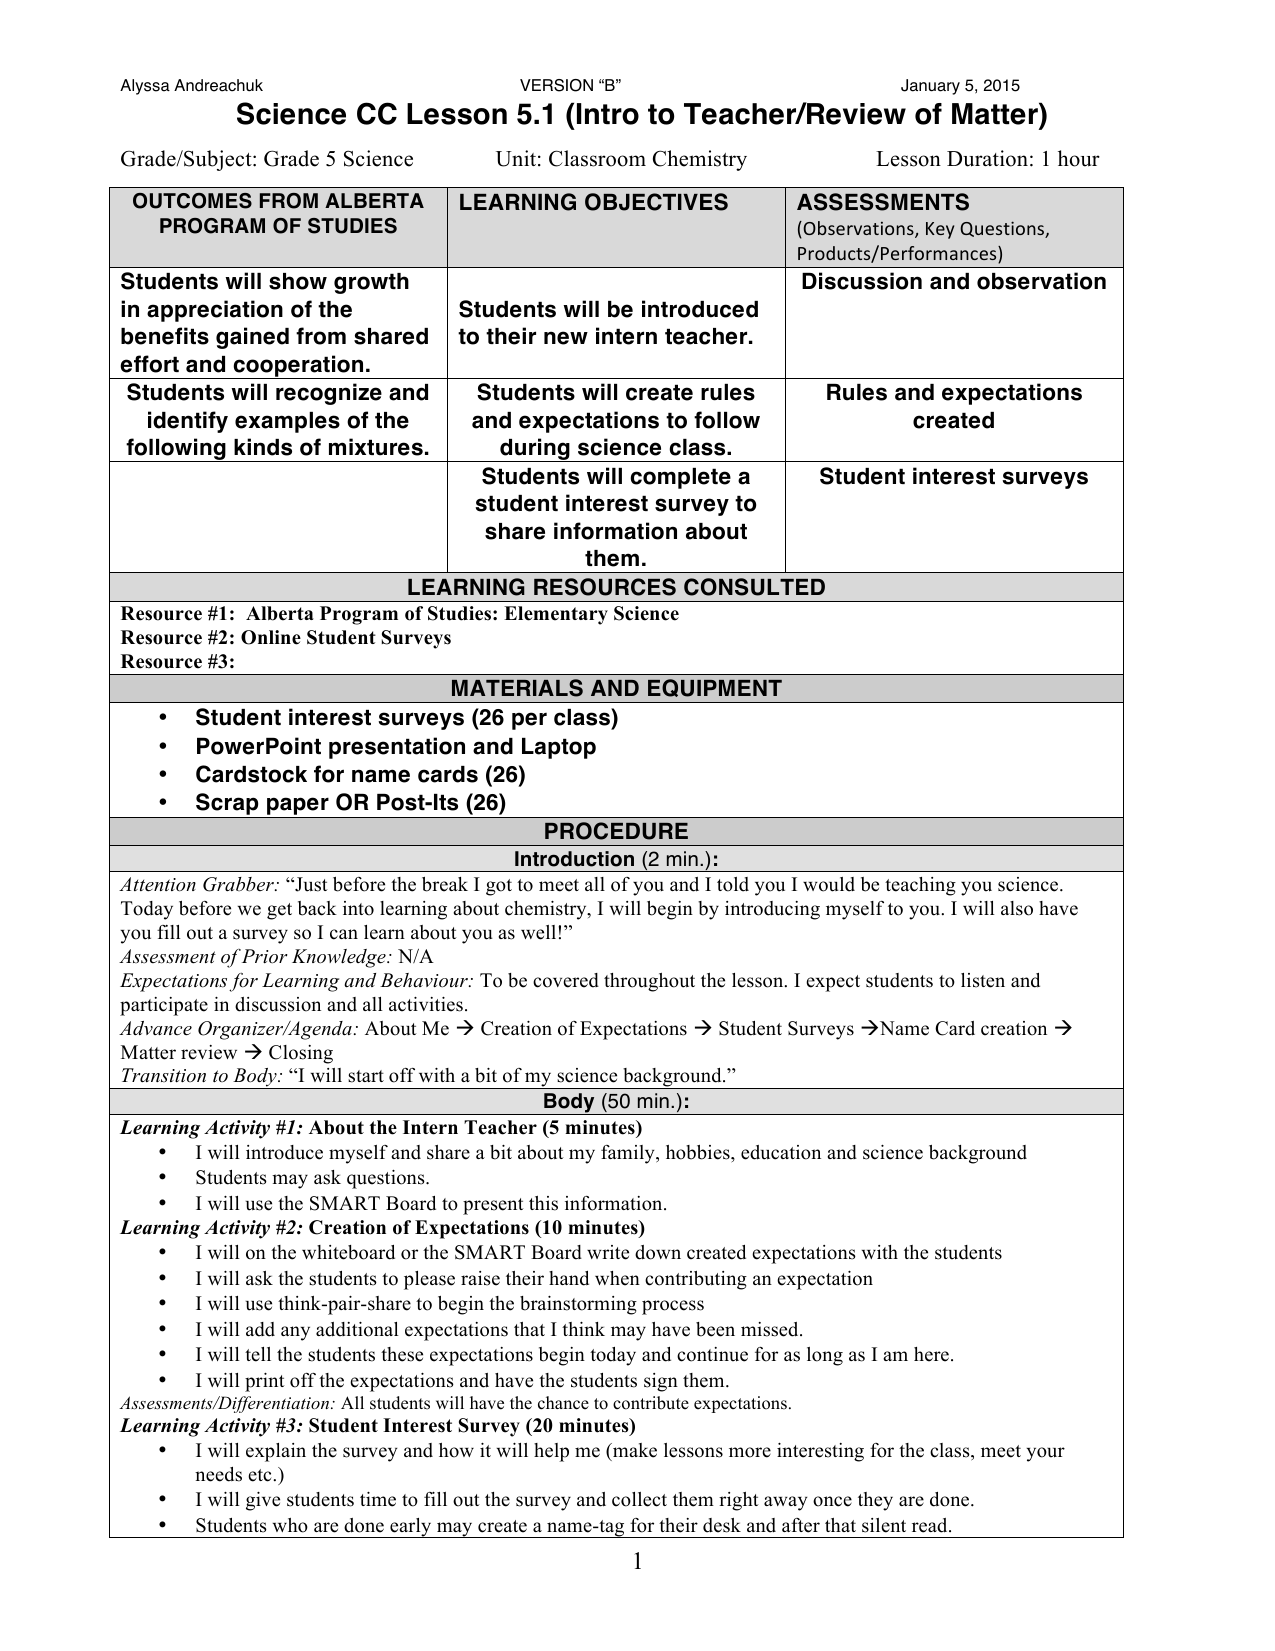 Worksheets Ed Science Worksheets For Grade 6 grade 5 classroom chemistry lesson plans resource preview preview